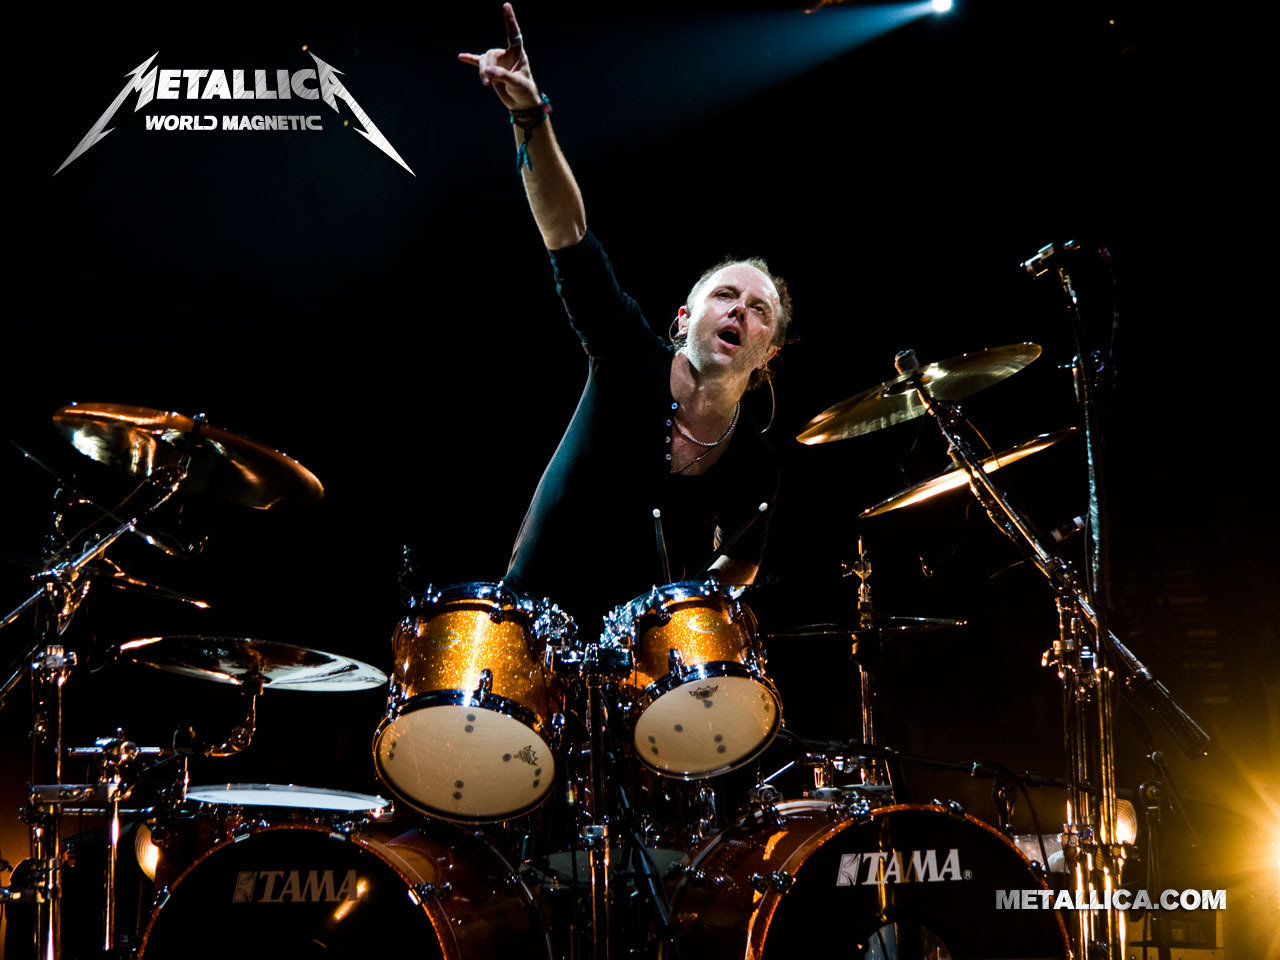 Mod The Sims - Lars Ulrich, the drummer of Metallica